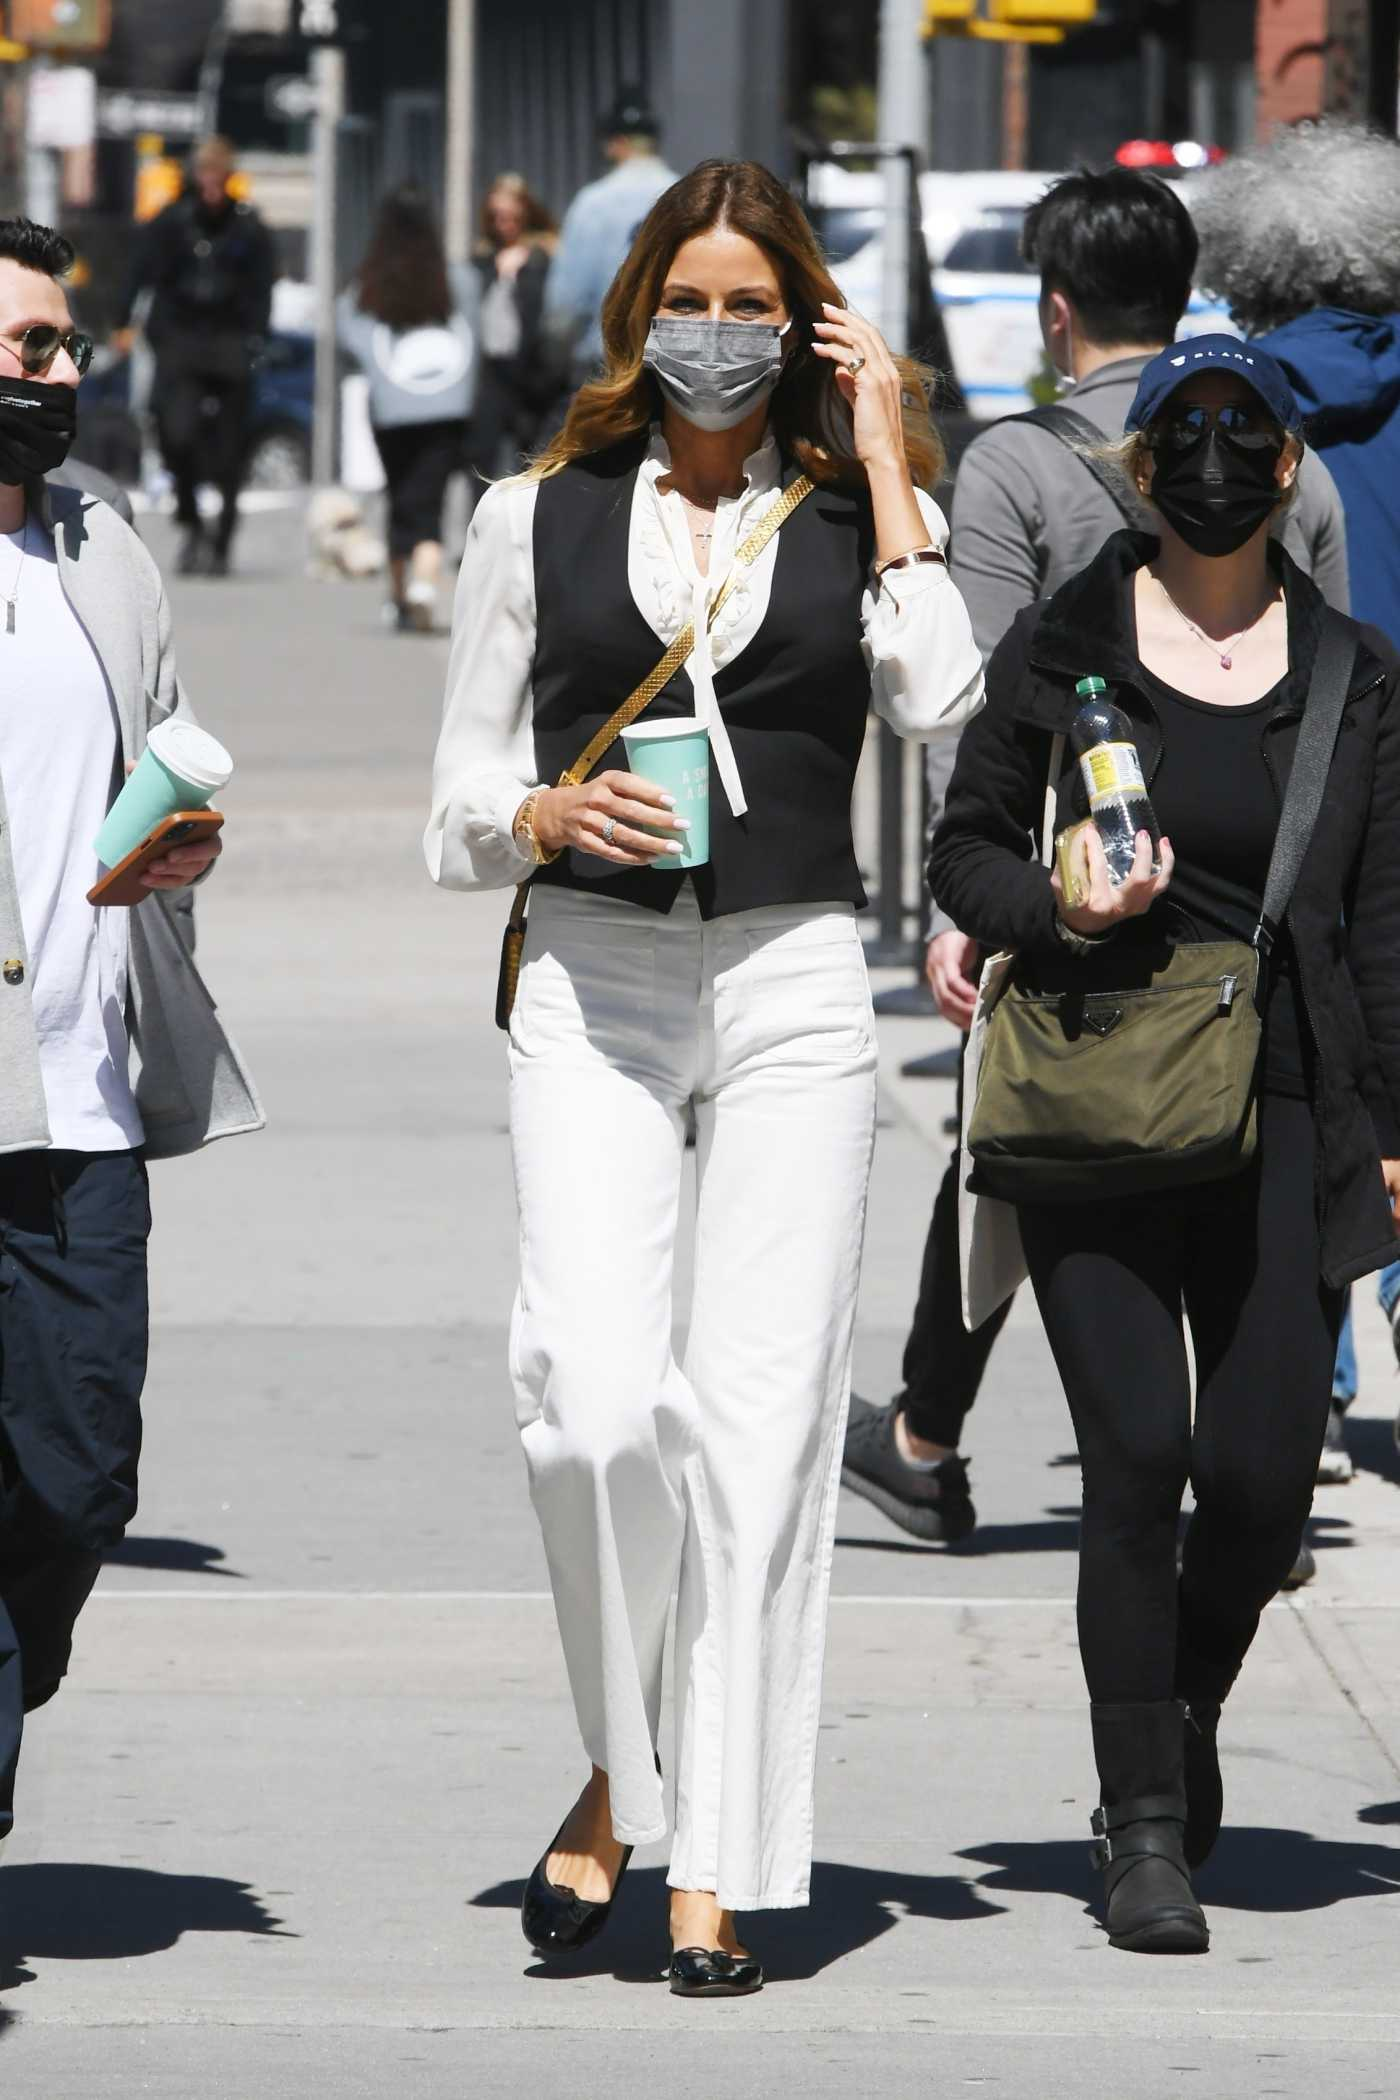 Kelly Bensimon in a White Blouse Was Seen Out with Friends in SoHo, New York 04/13/2021